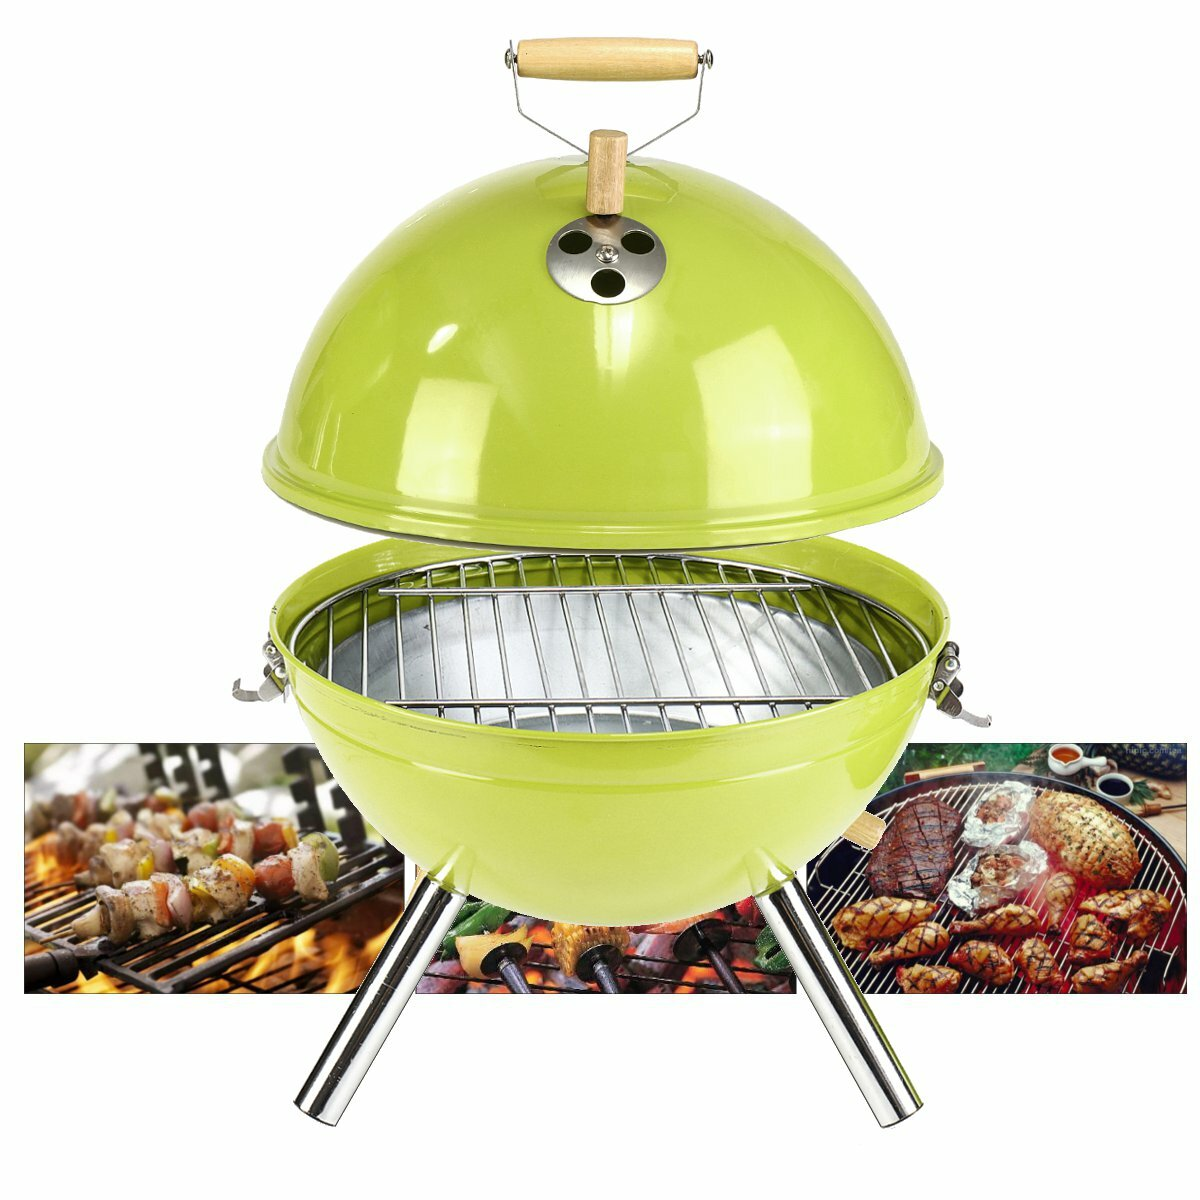 <US Instock> Original Kettle Charcoal Grill Outdoor Portable BBQ Grill Stainless Steel Kettle Grill BBQ Barbecue Grill